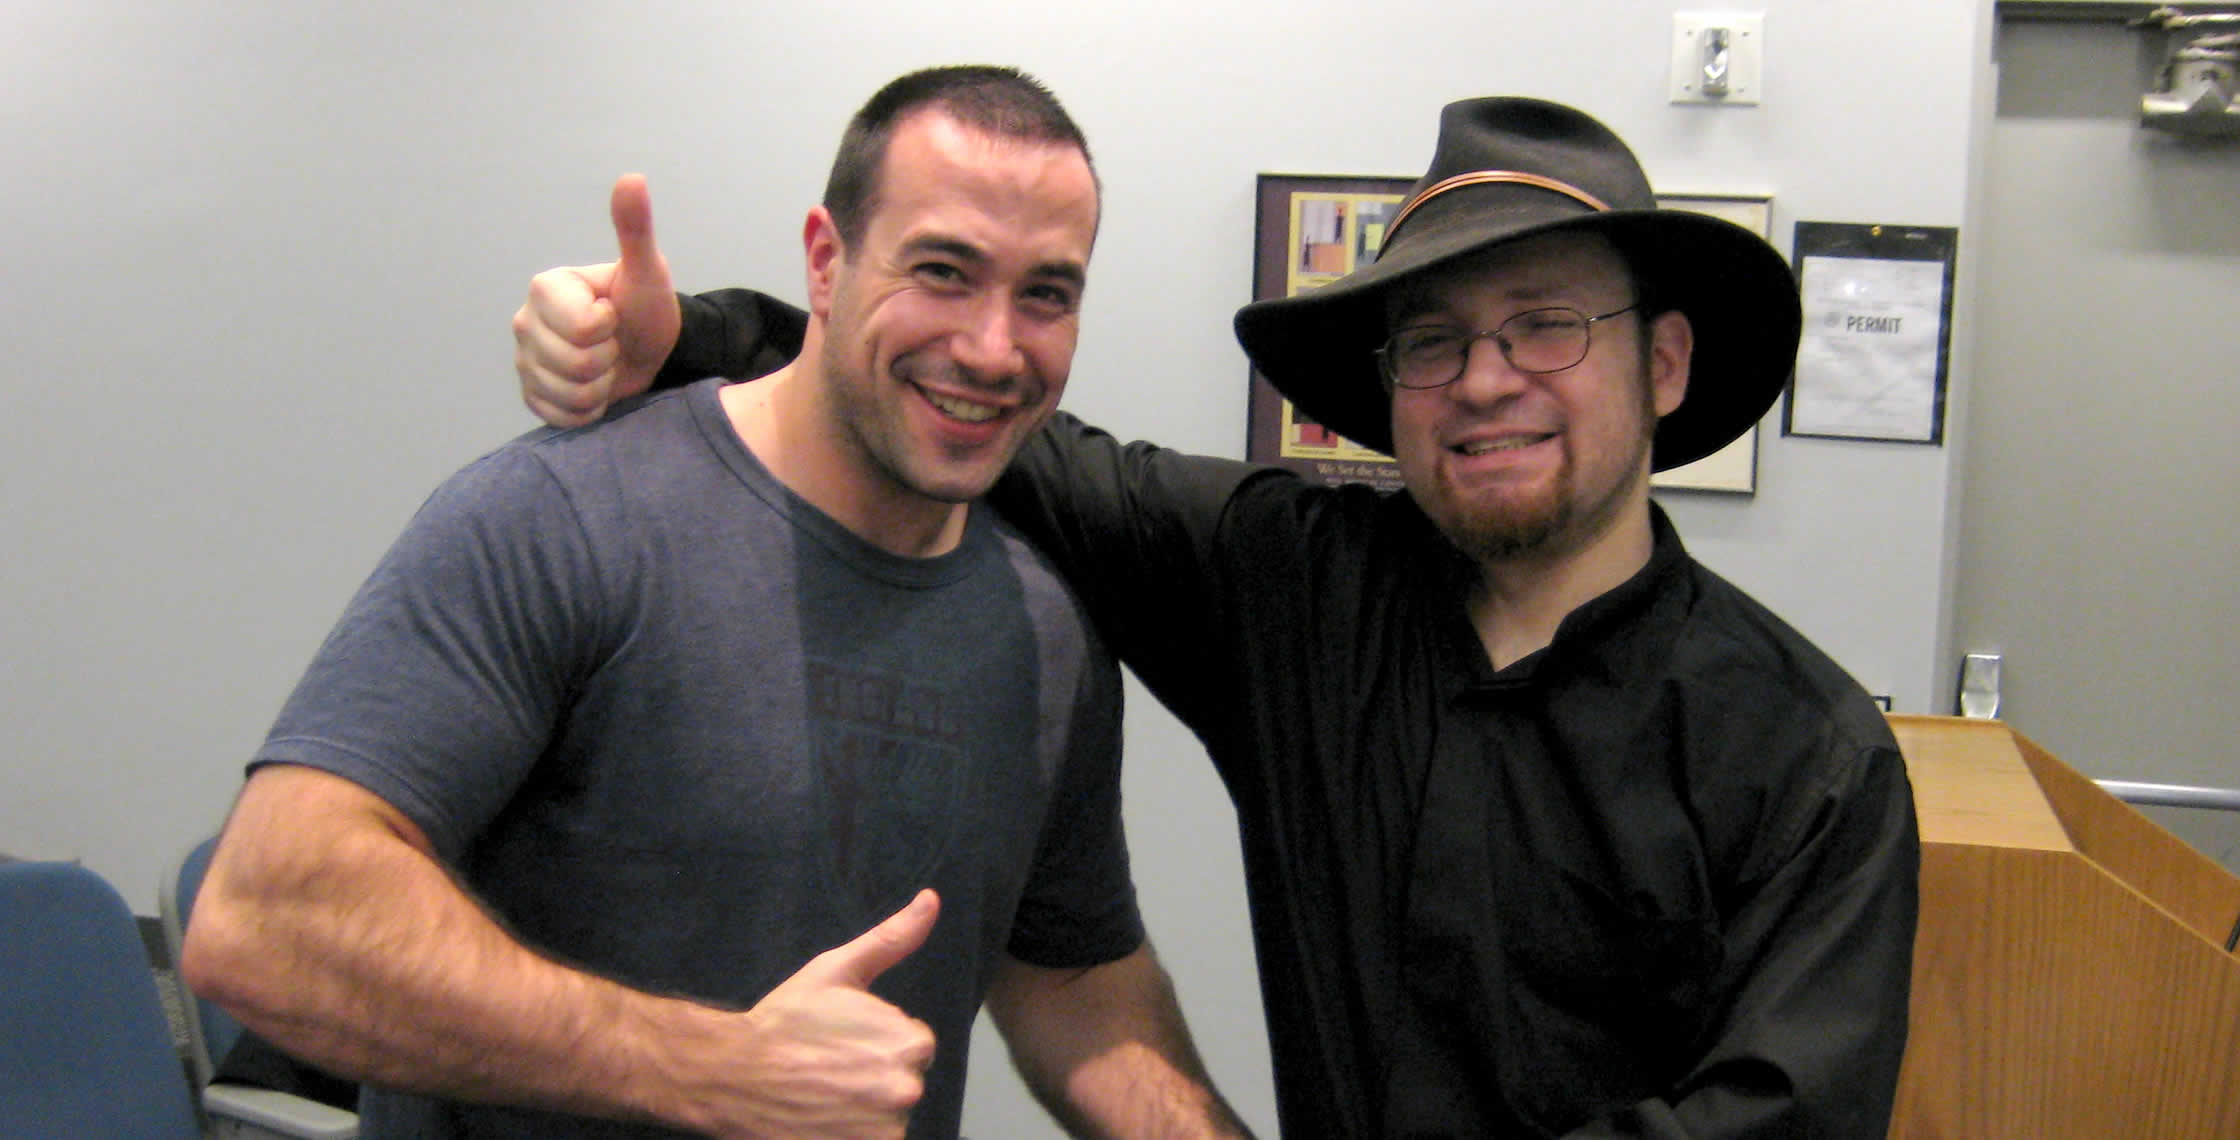 Ben Nadel at the New York ColdFusion User Group (Dec. 2008) with: Michael Dinowitz